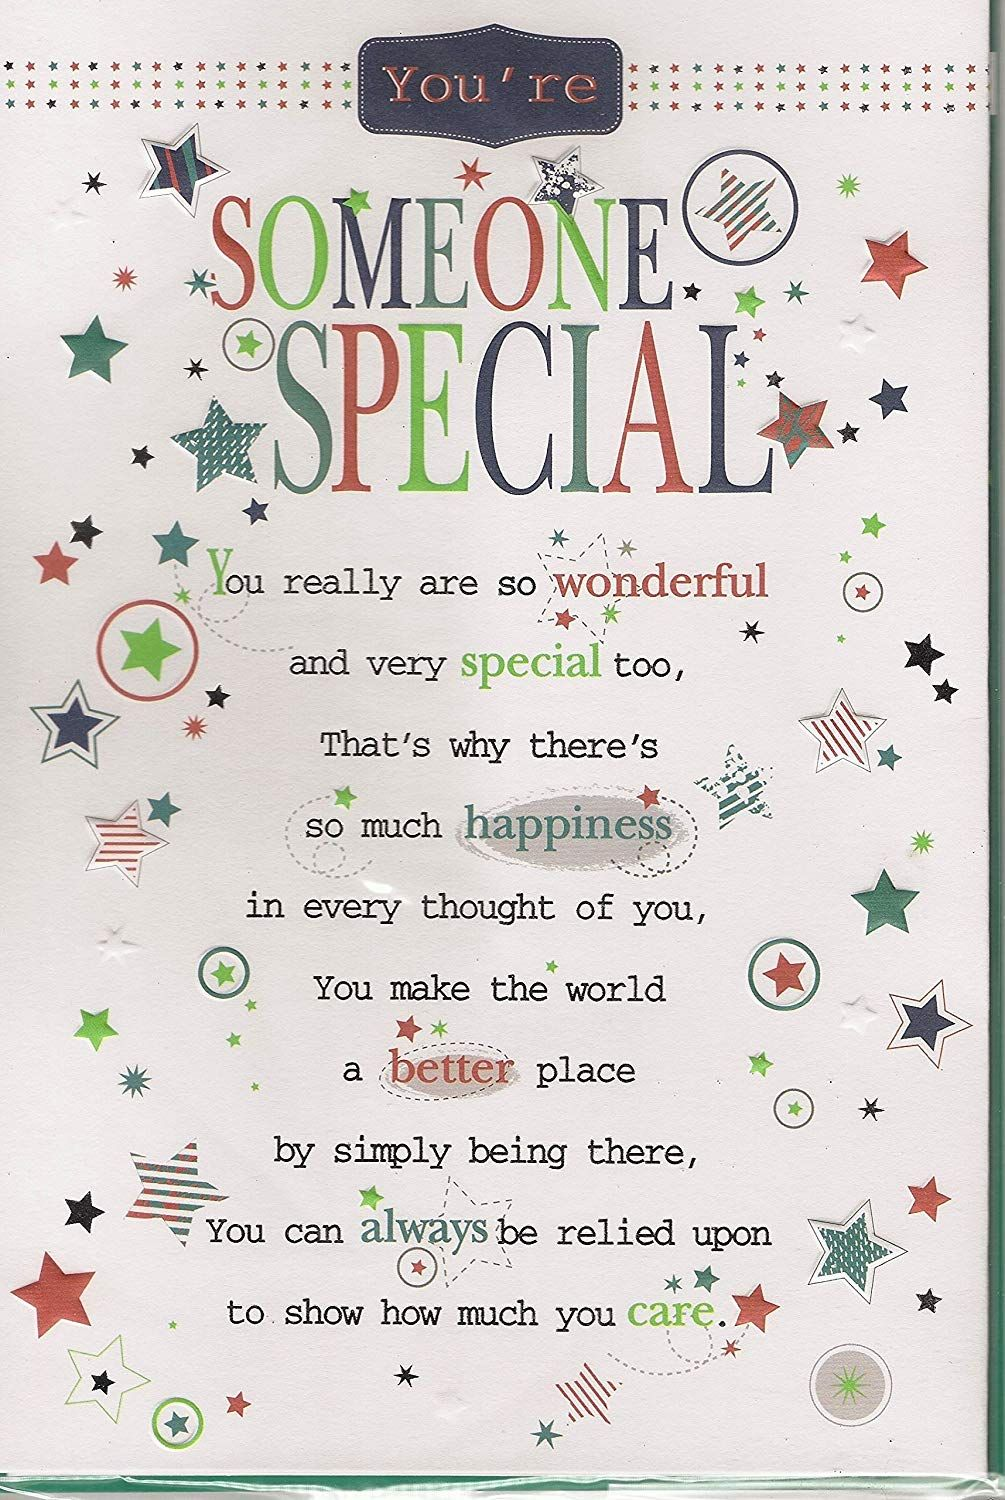 Someone Special Birthday Card You Re Someone Special Male Or Female Caring Greetings Card Amazon Co Special Birthday Cards Birthday Cards Special Birthday